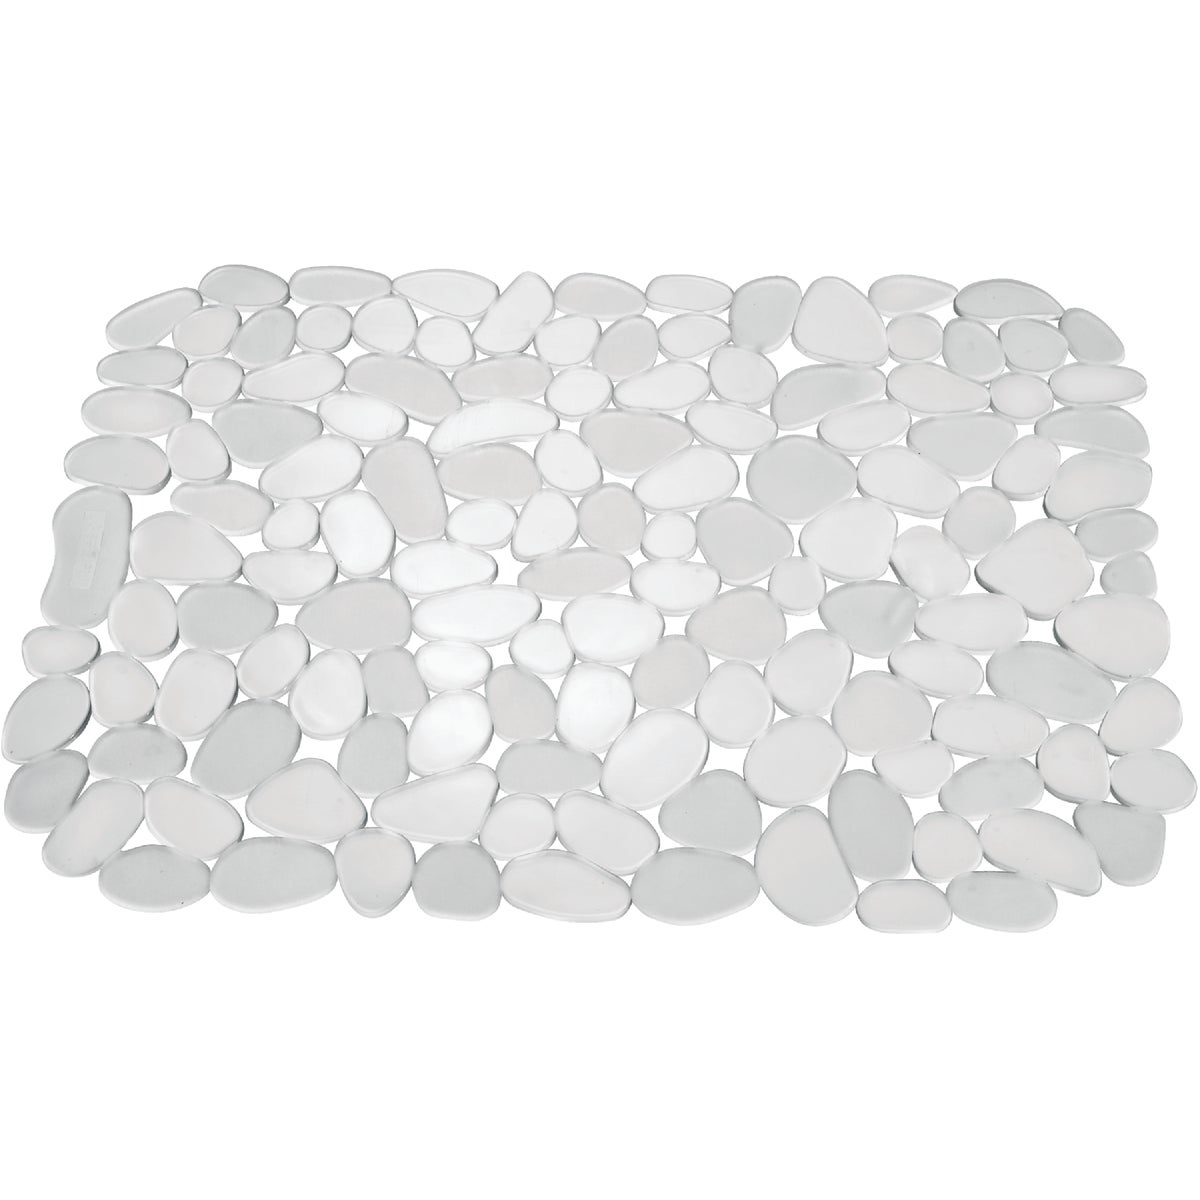 LARGE CLEAR SINK MAT - 60660 by Interdesign Inc